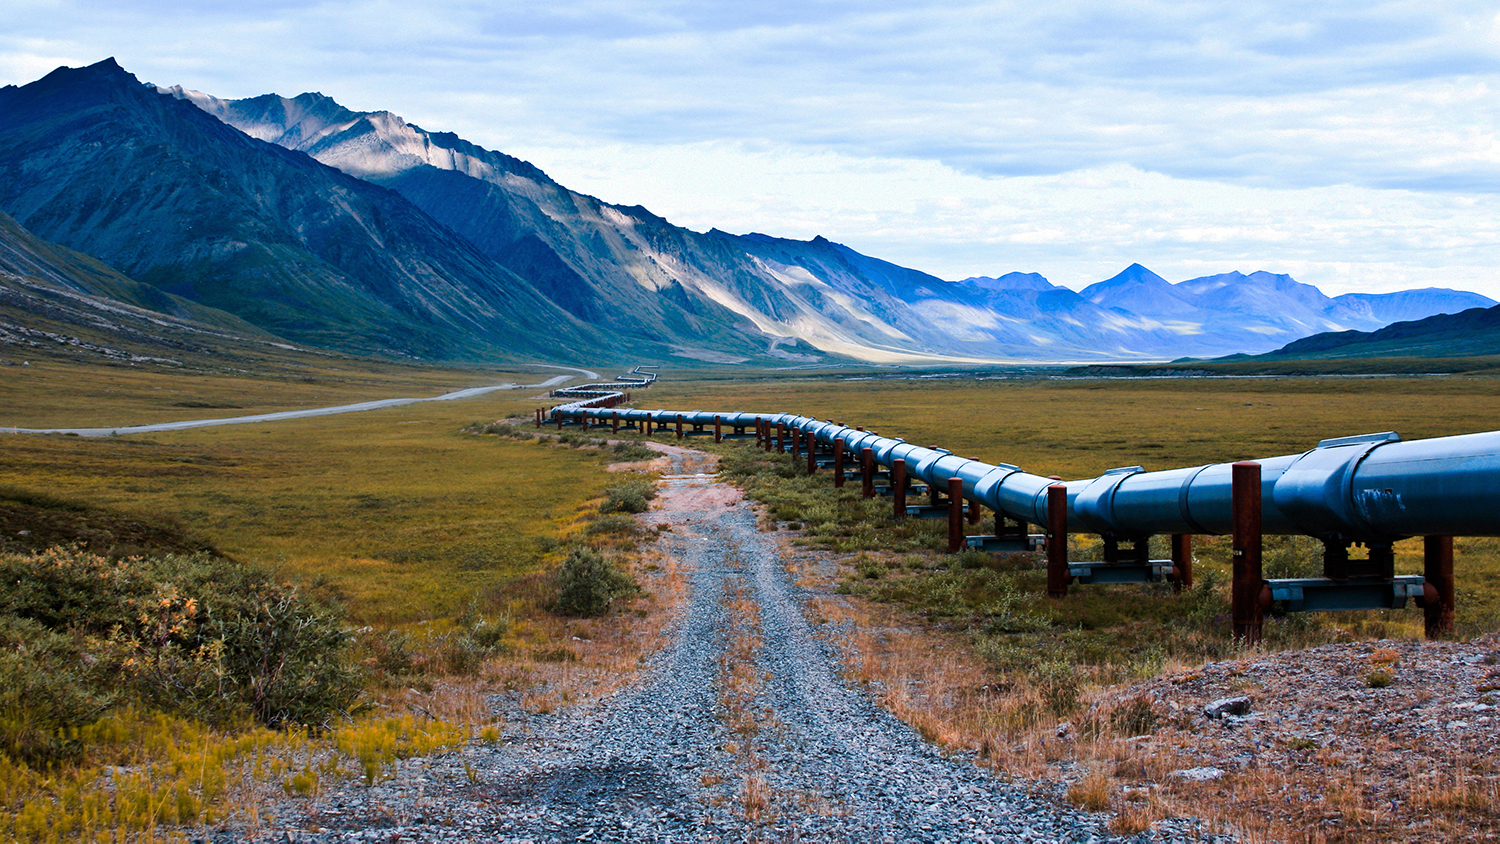 An image of the trans-alaskan oil pipeline that carries oil from the northern part of Alaska all the way to valdez. this shot is right near the arctic national wildlife refuge.